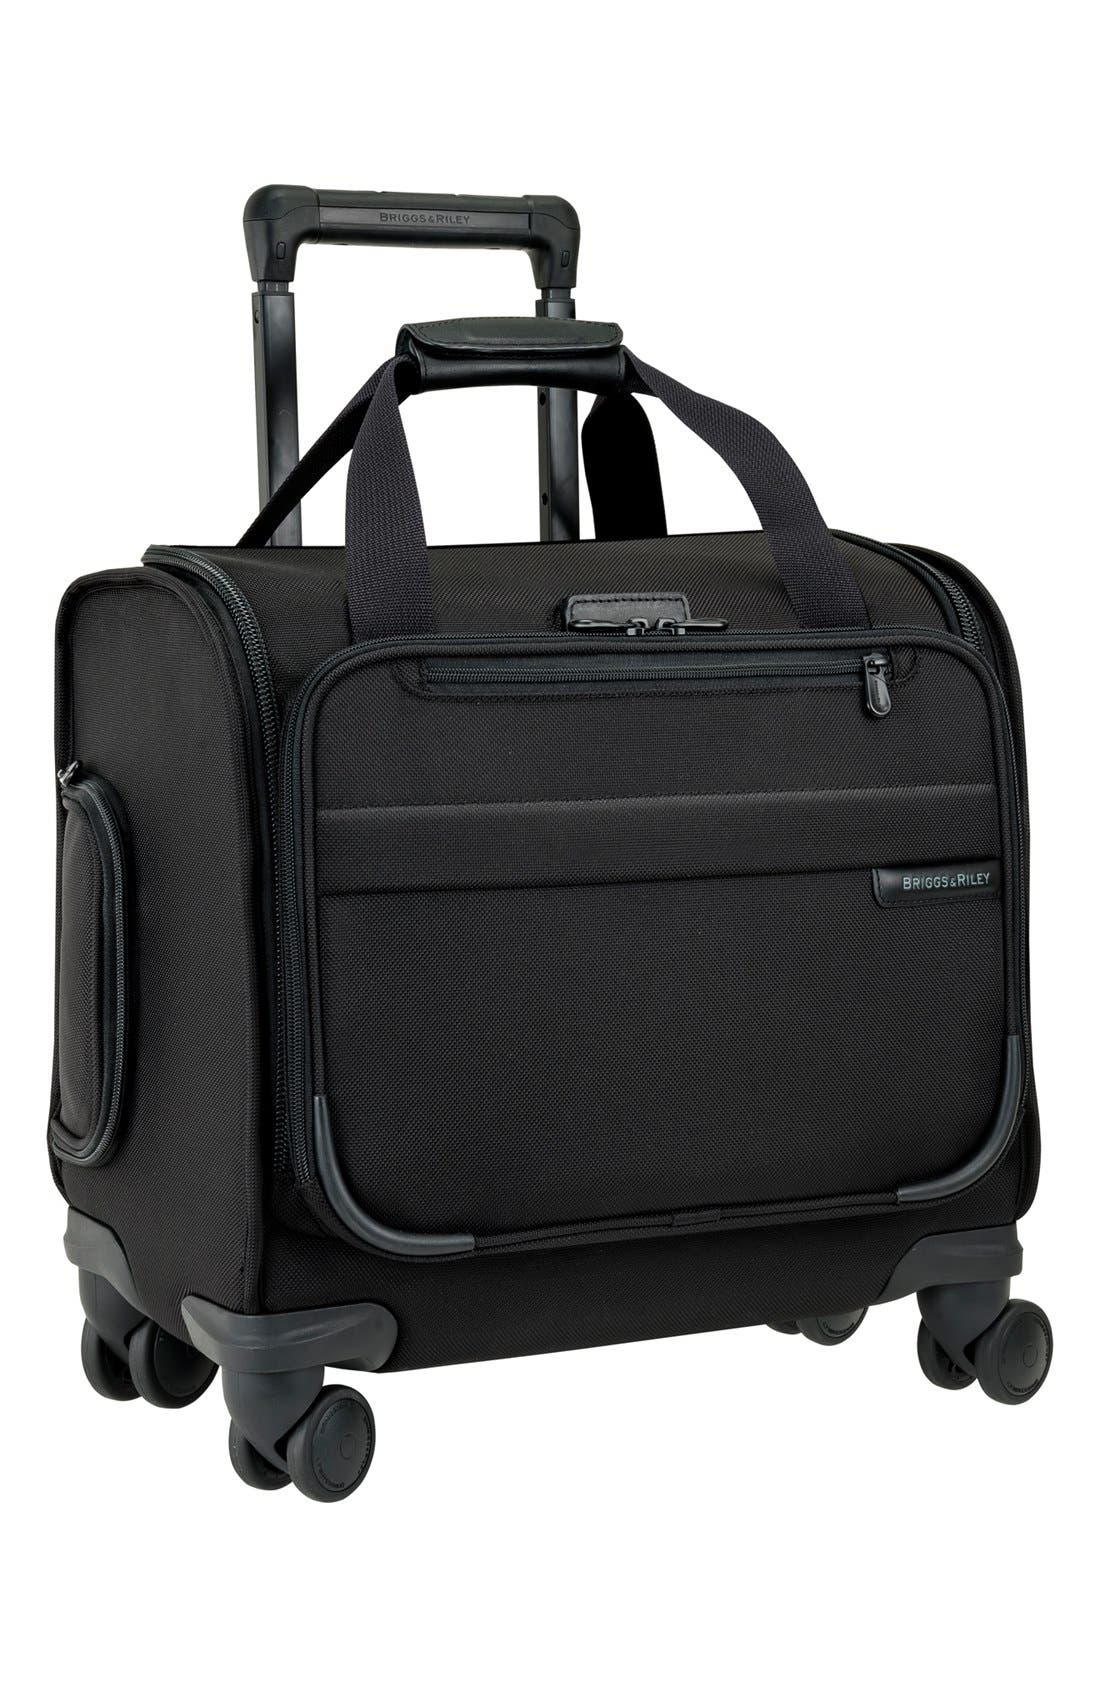 BRIGGS & RILEY 'Cabin' Spinner Carry-On, Main, color, BLACK